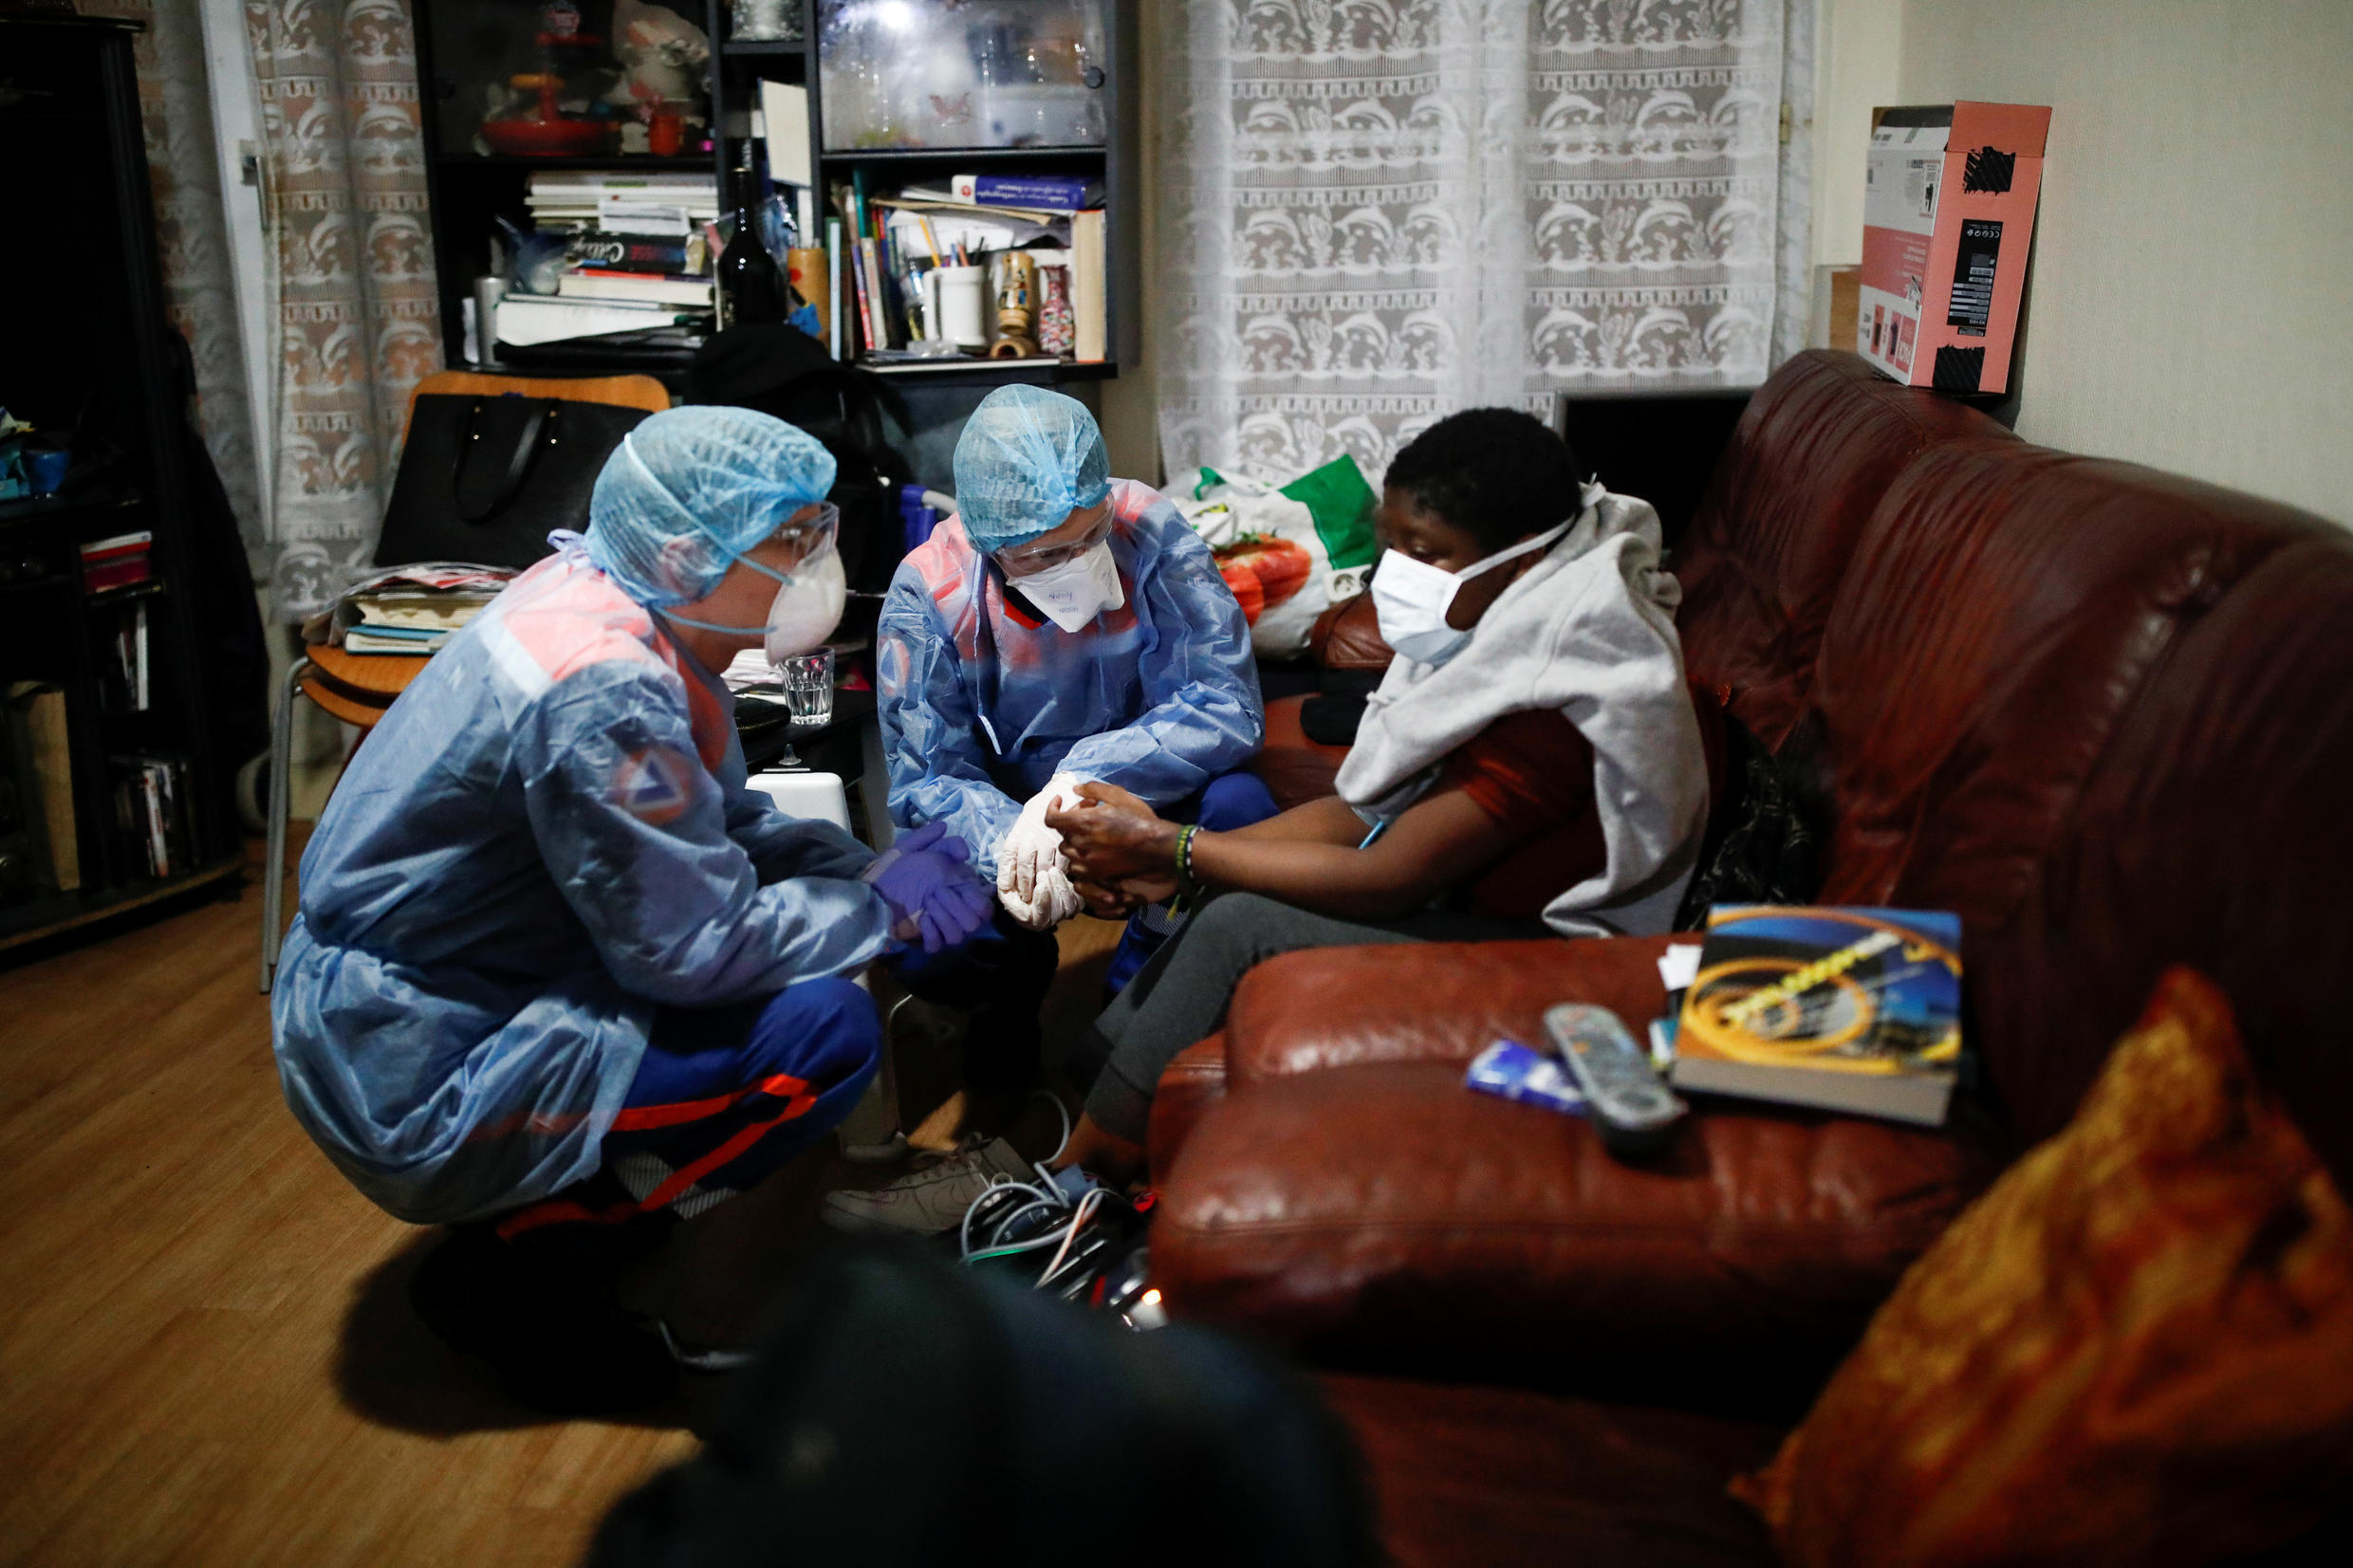 Members of the French civil protection service talk with an 18-year-old woman suspected of being infected with the coronavirus  in Paris, France, on April 4, 2020.